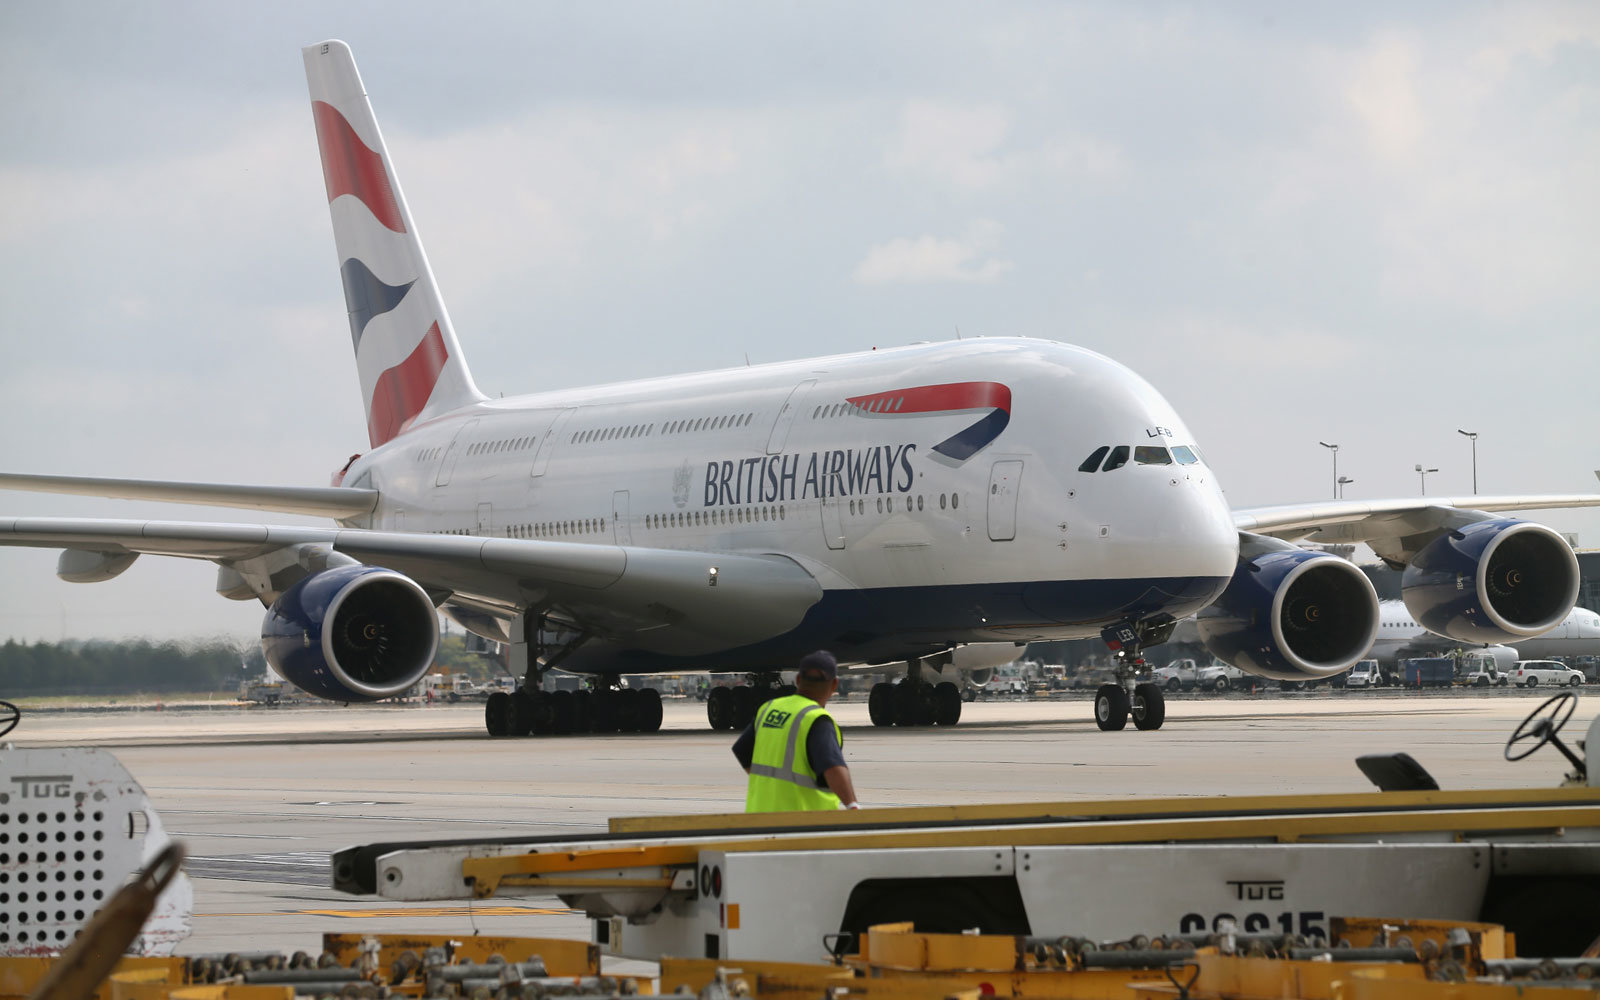 A British Airways jet.